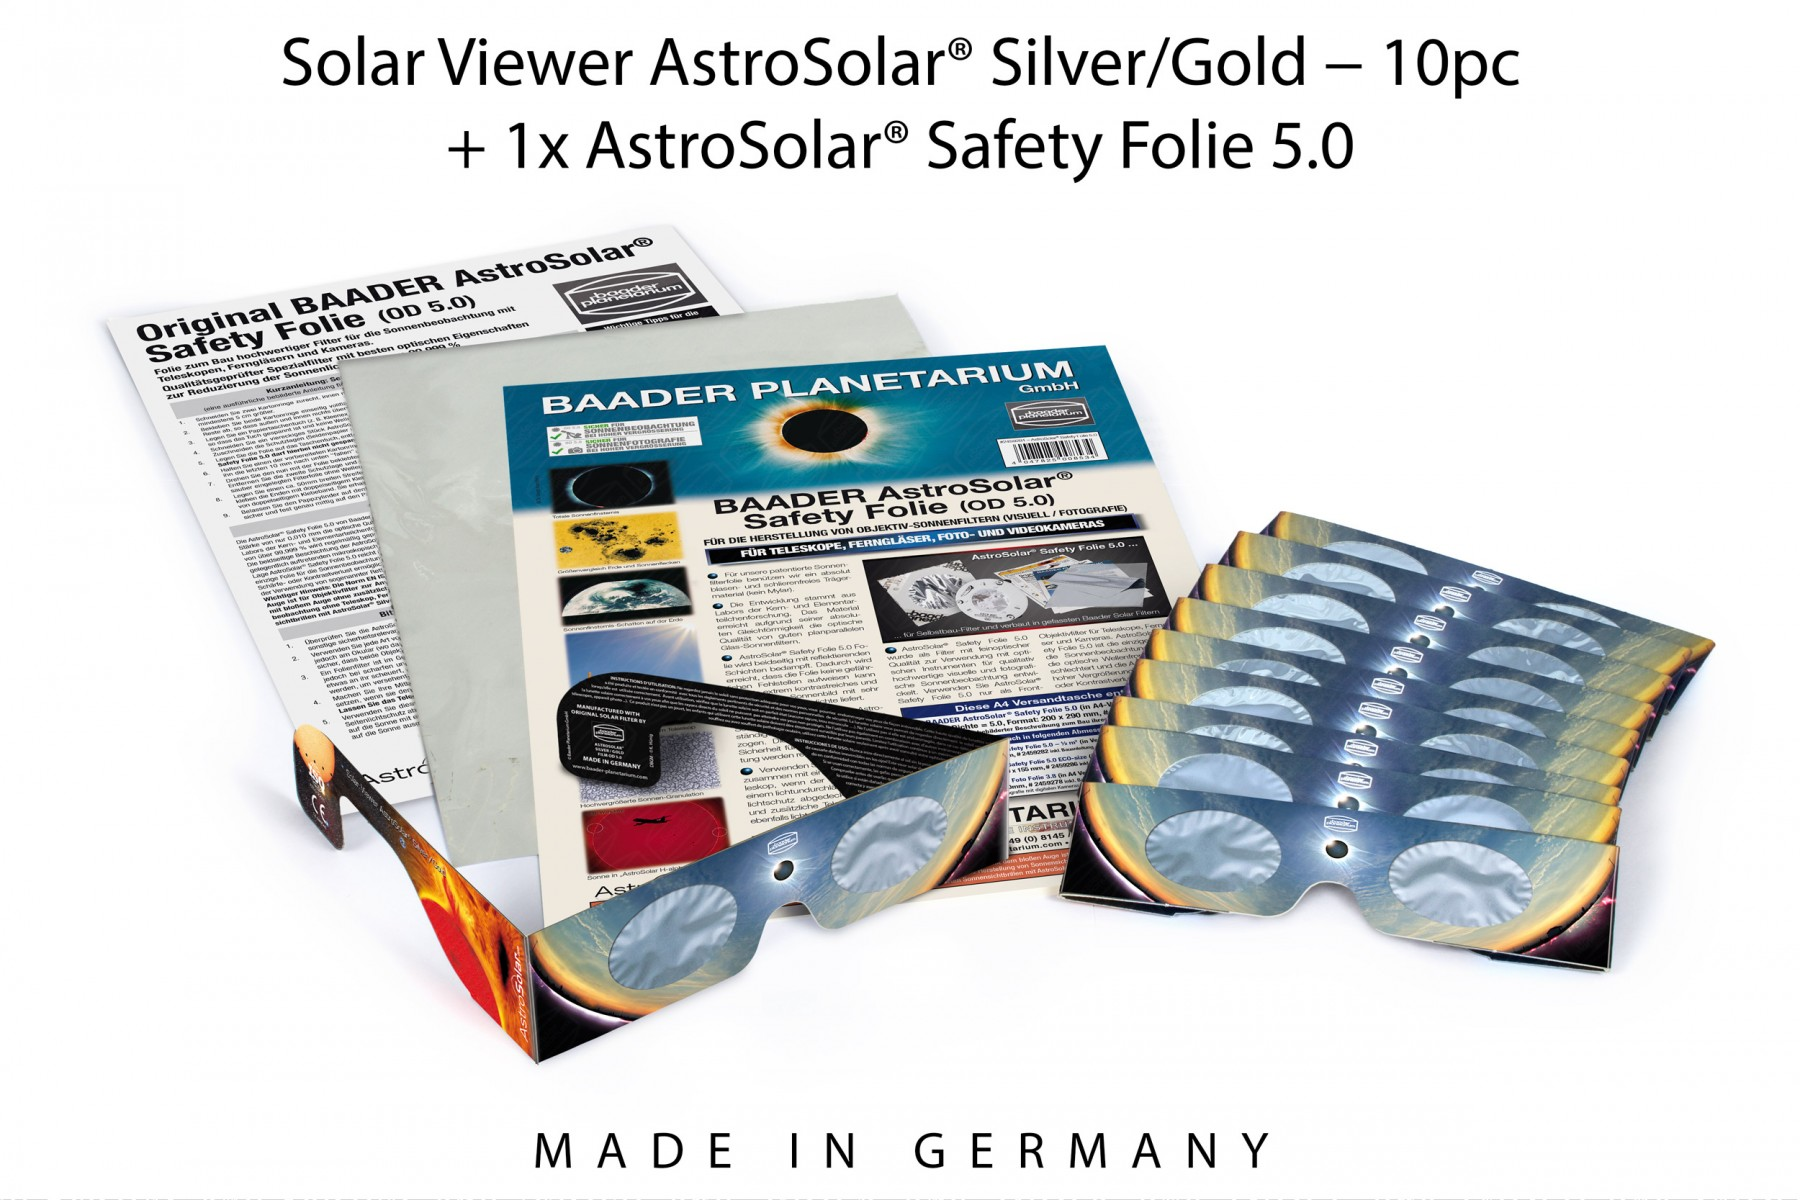 10x Solar Viewer AstroSolar® Silver/Gold + 1x AstroSolar® Safety Folie 5.0 - 20x29 cm